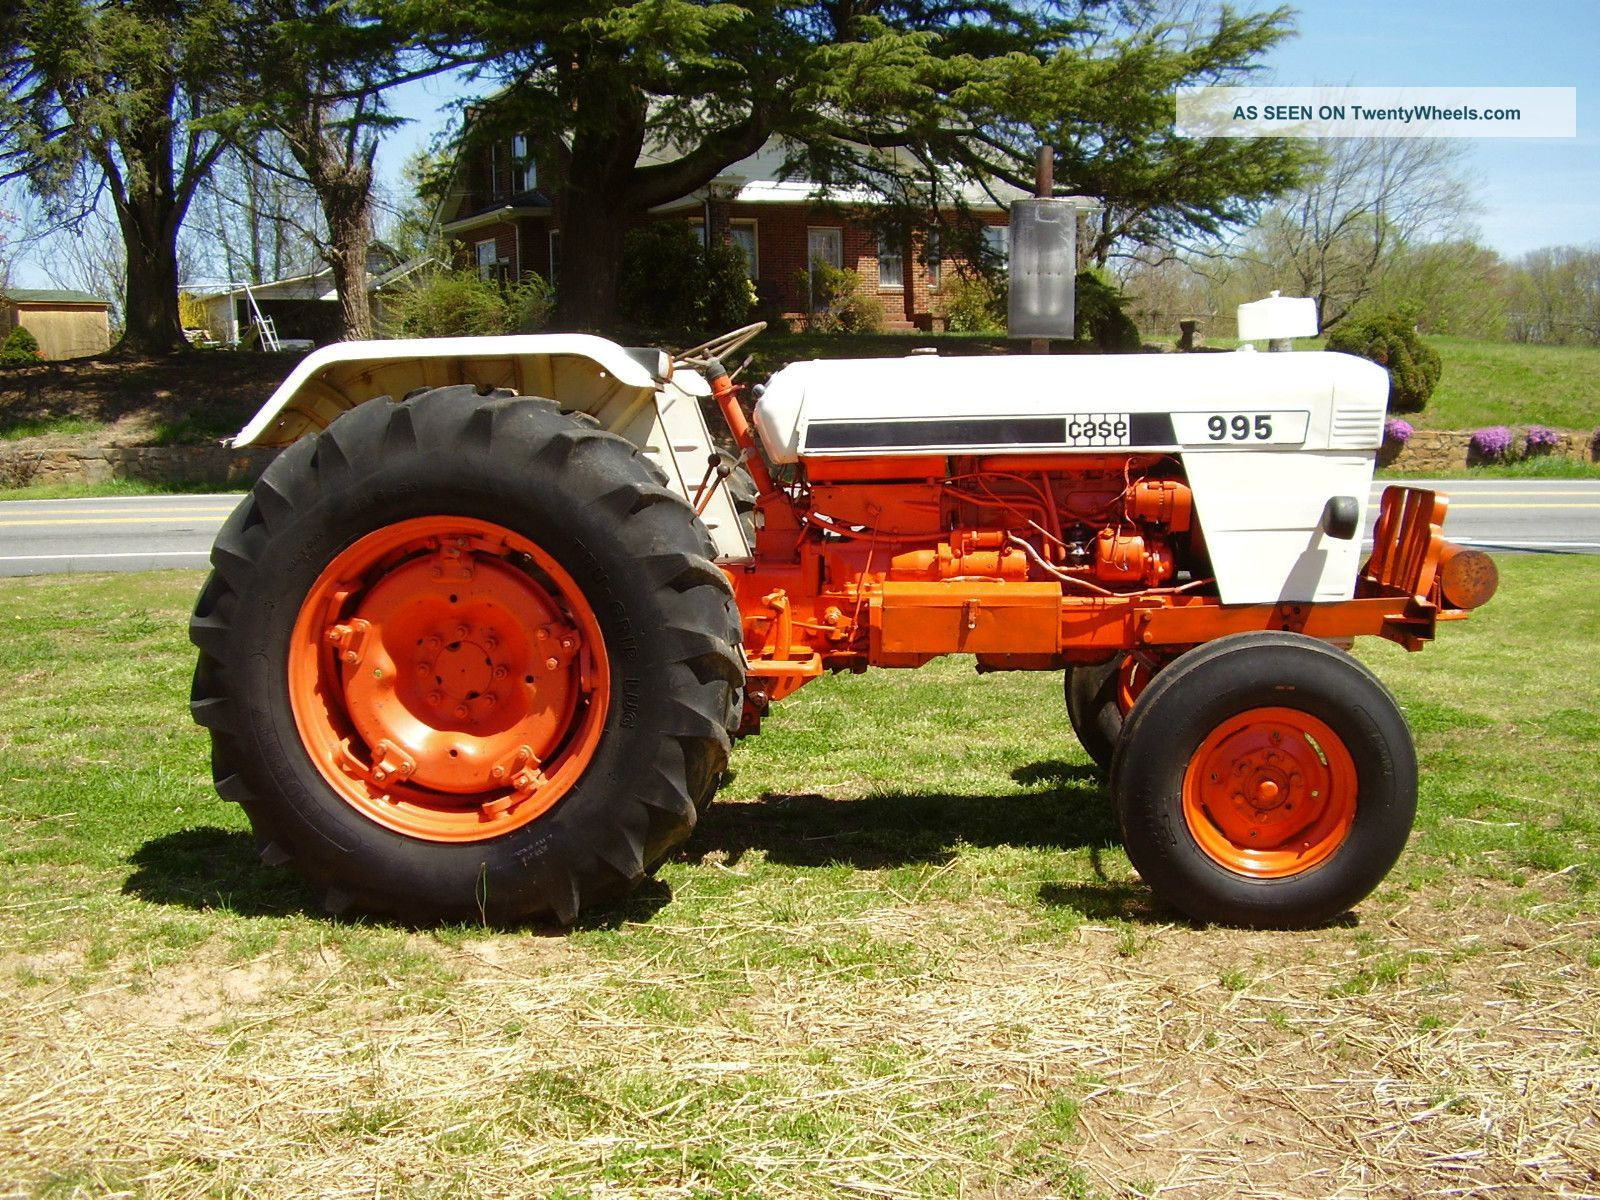 995 case david brown 2 wd diesel tractor 64 hp photos and info twentywheels